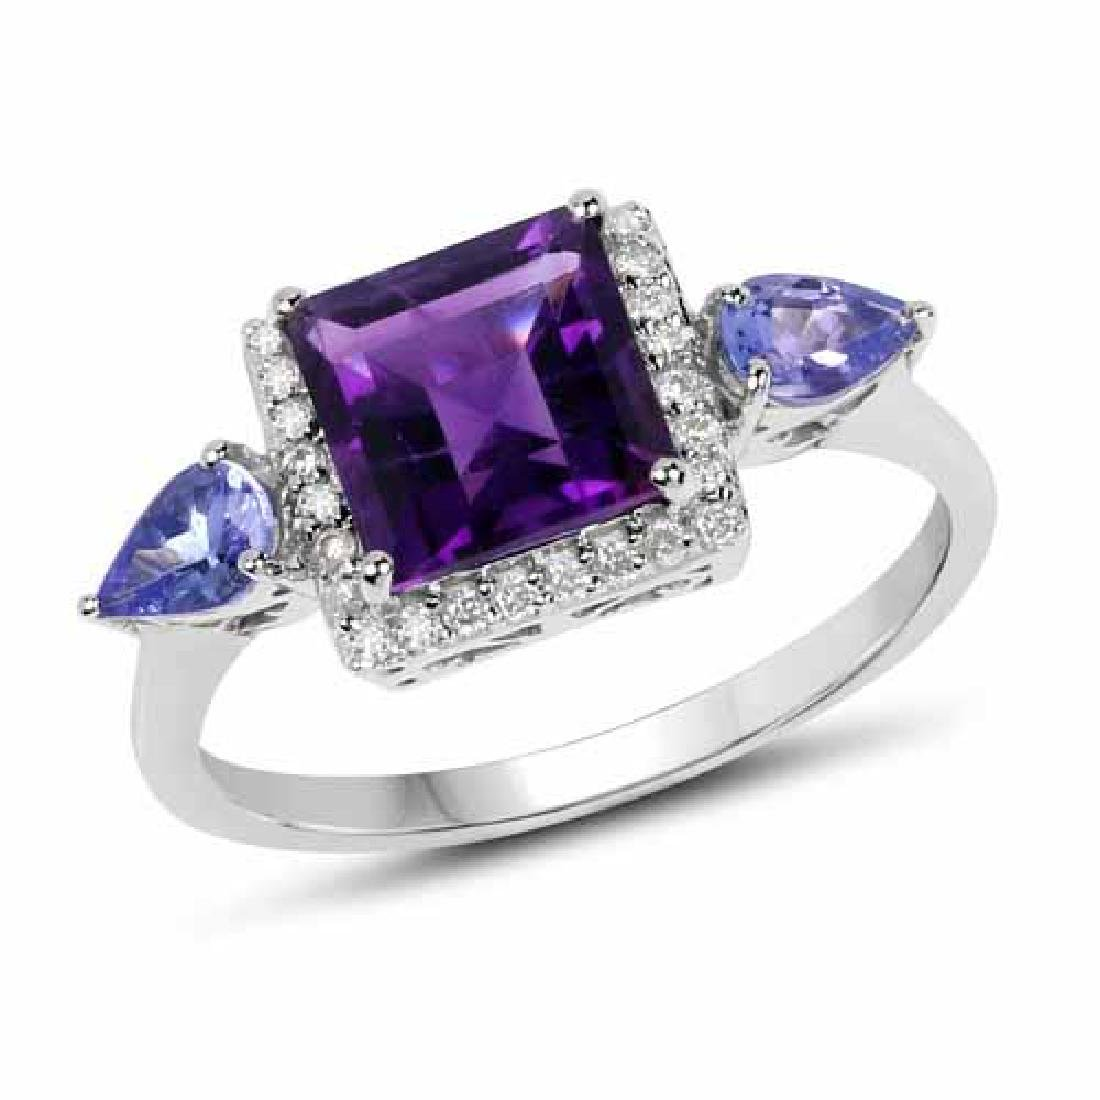 2.07 Carat Genuine Amethyst Tanzanite and White Diamon